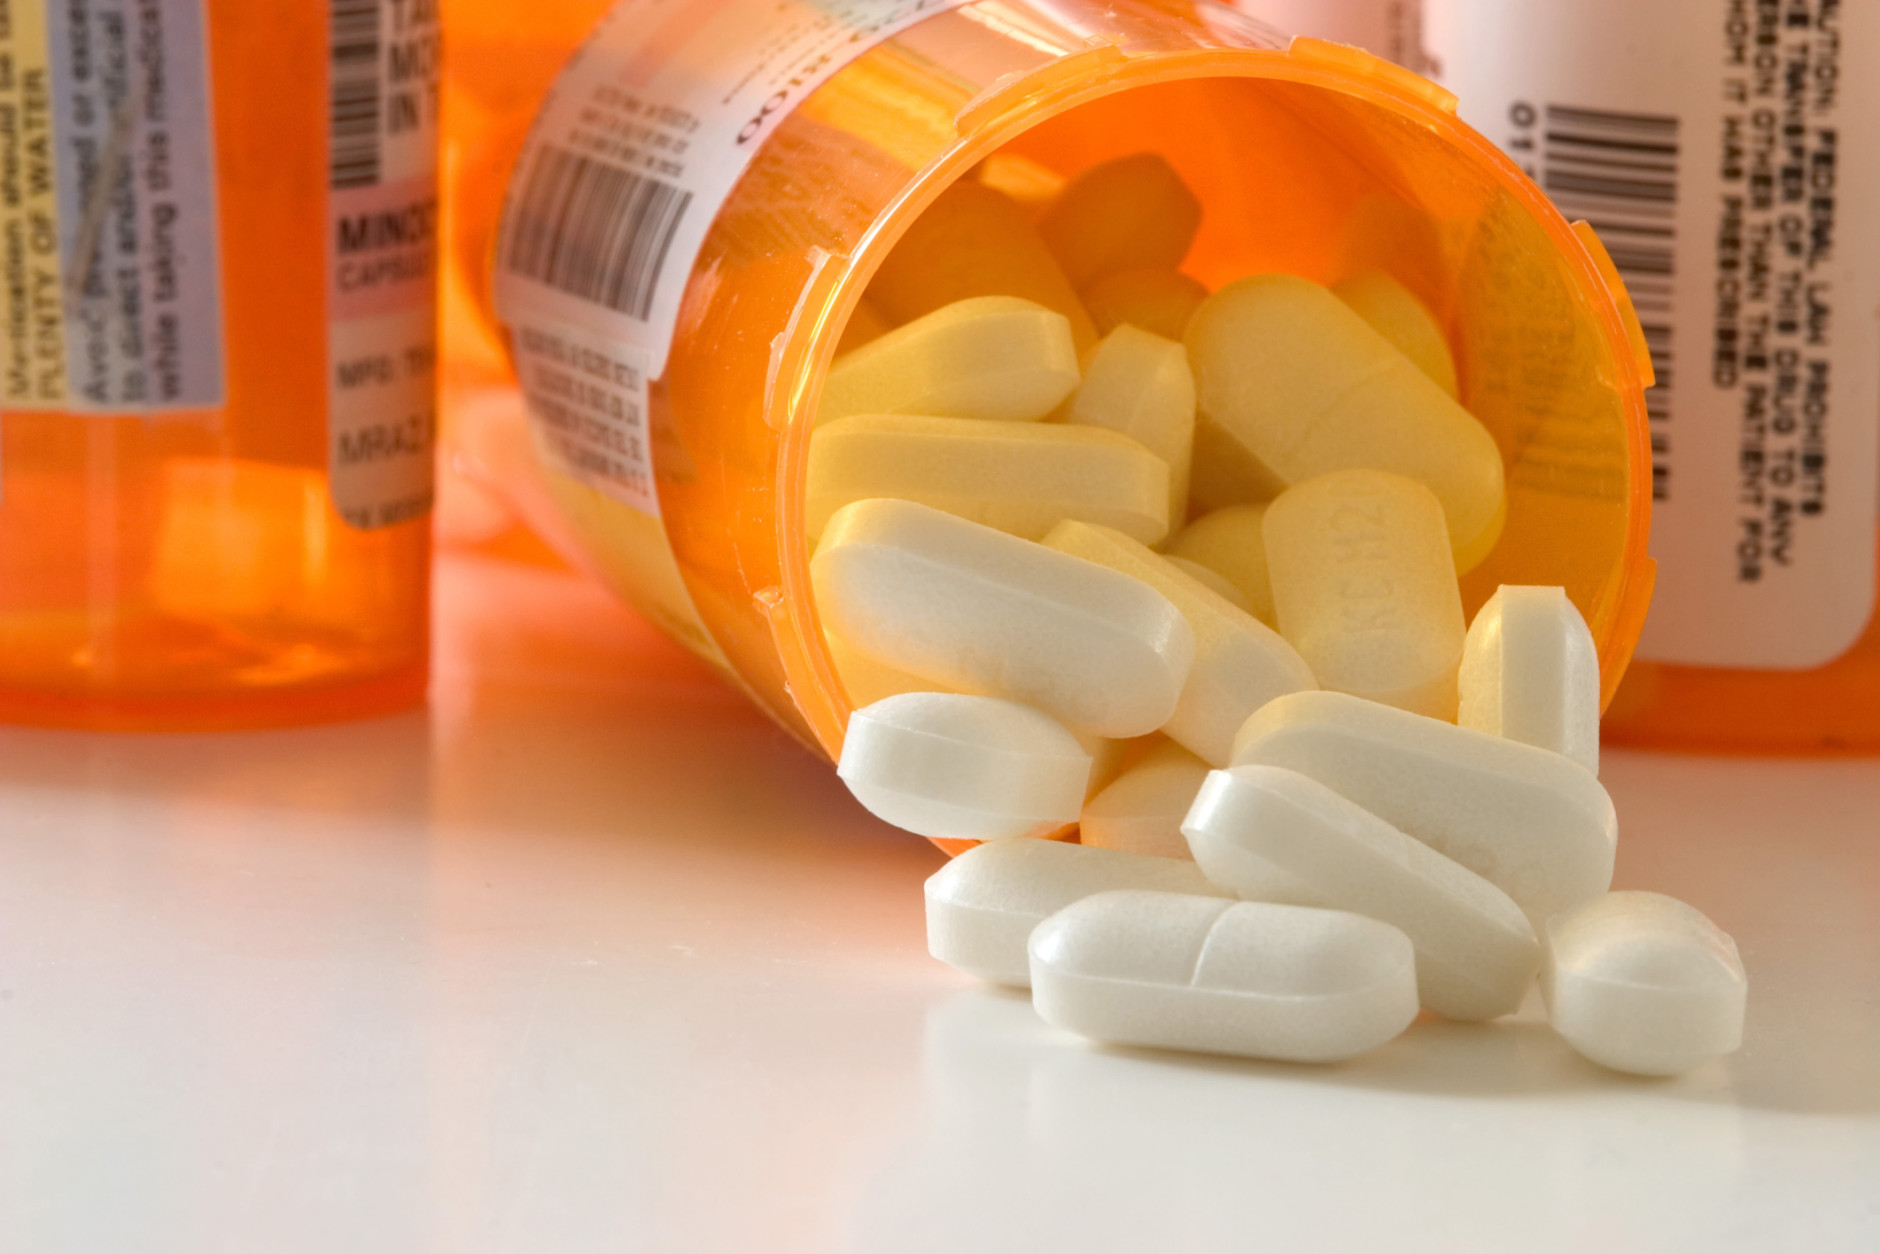 Getting rid of those old, unused bottles of prescription drugs just got easier and safer. (Thinkstock)